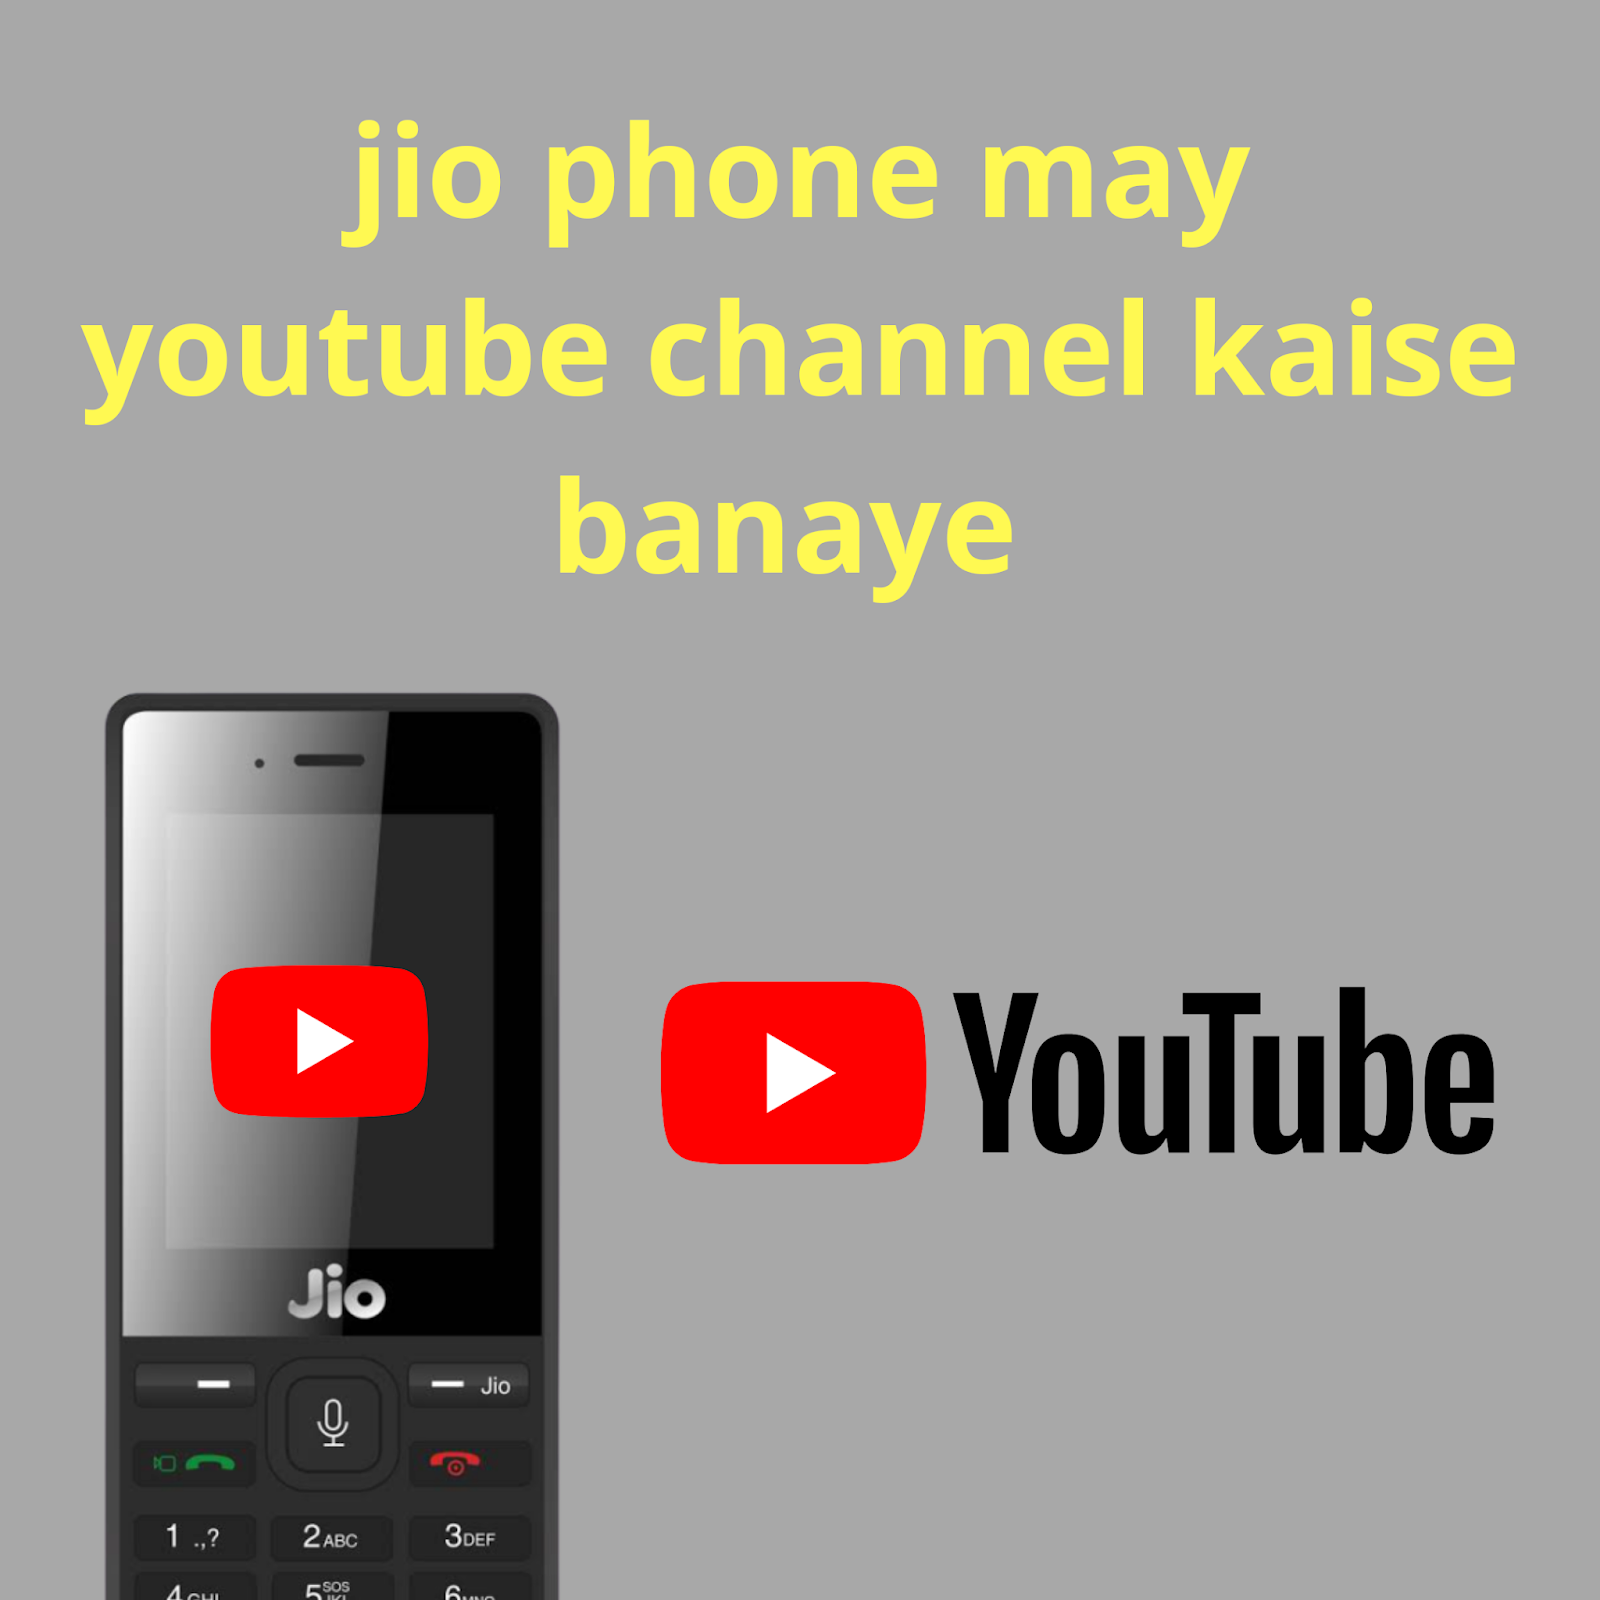 jio phone may youtube channel kaise banaye